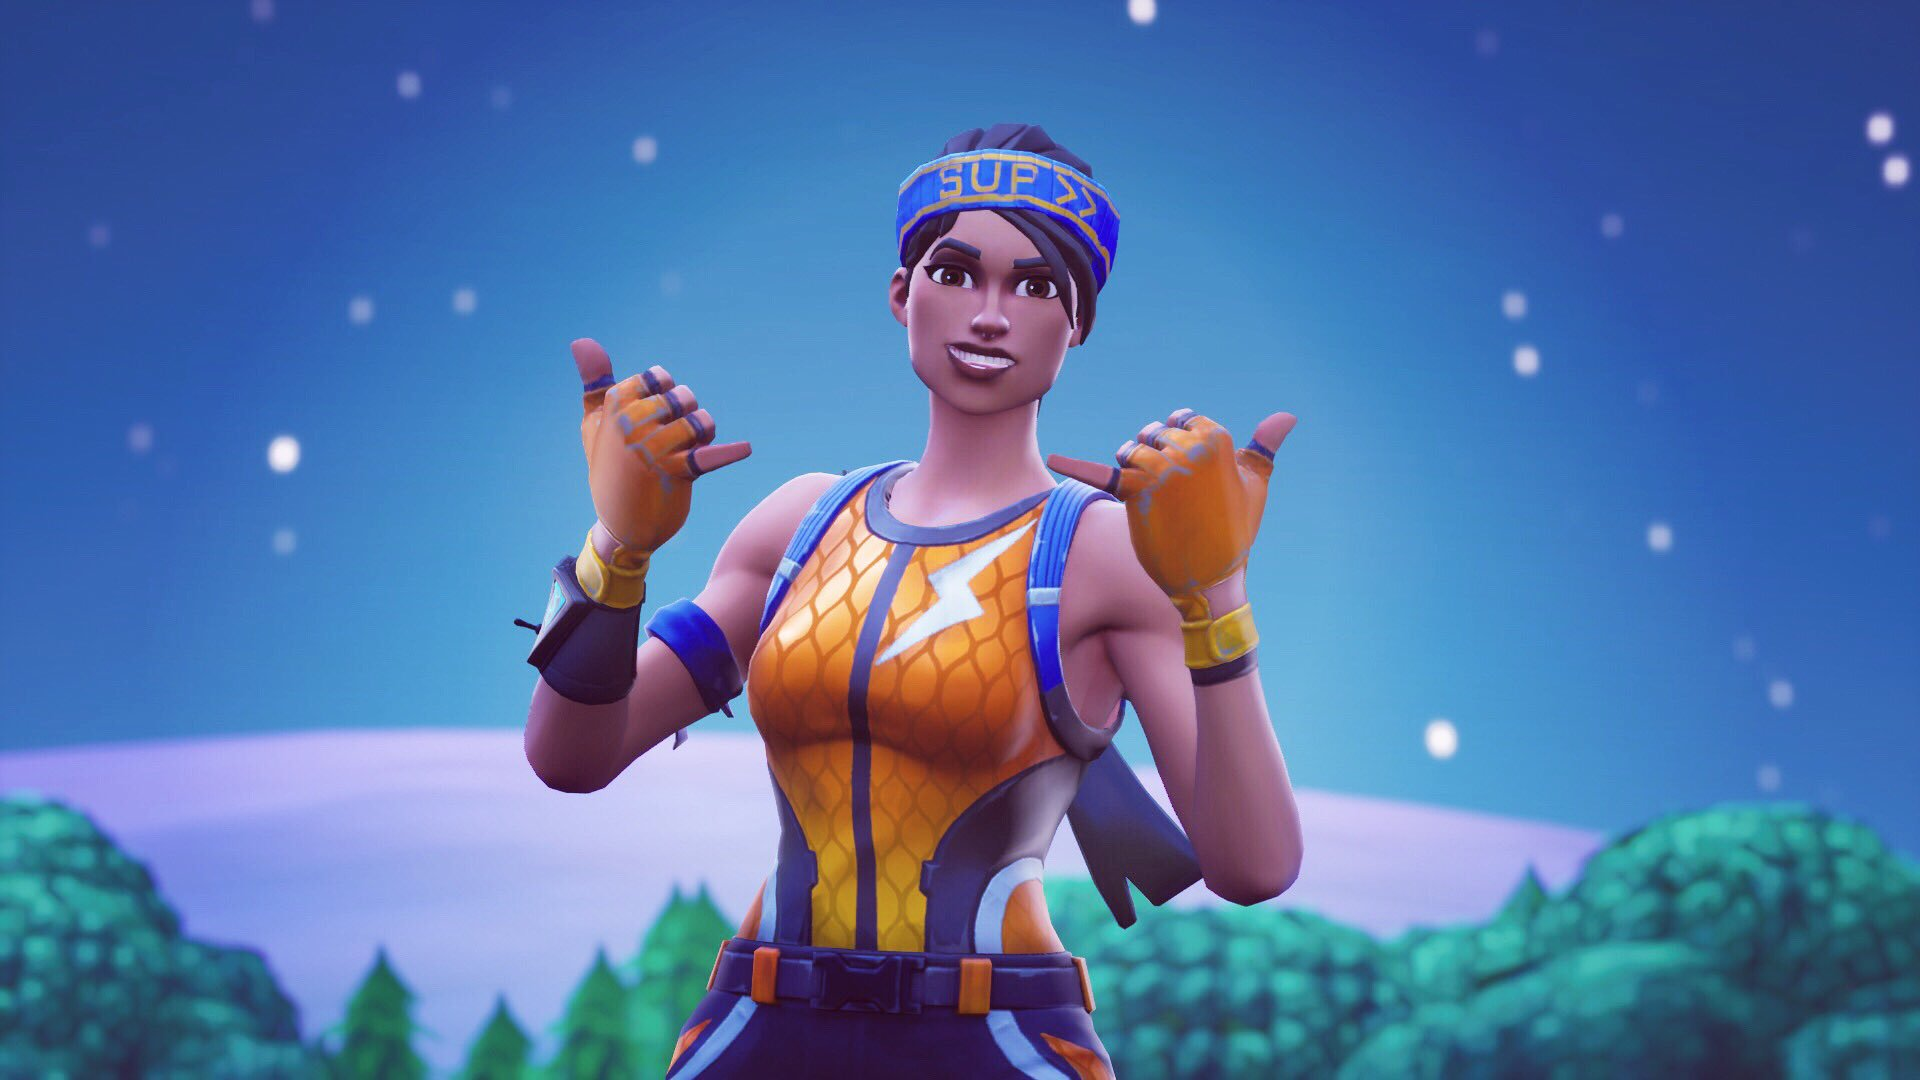 Deadeye Fortnite Wallpapers Posted By Christopher Tremblay